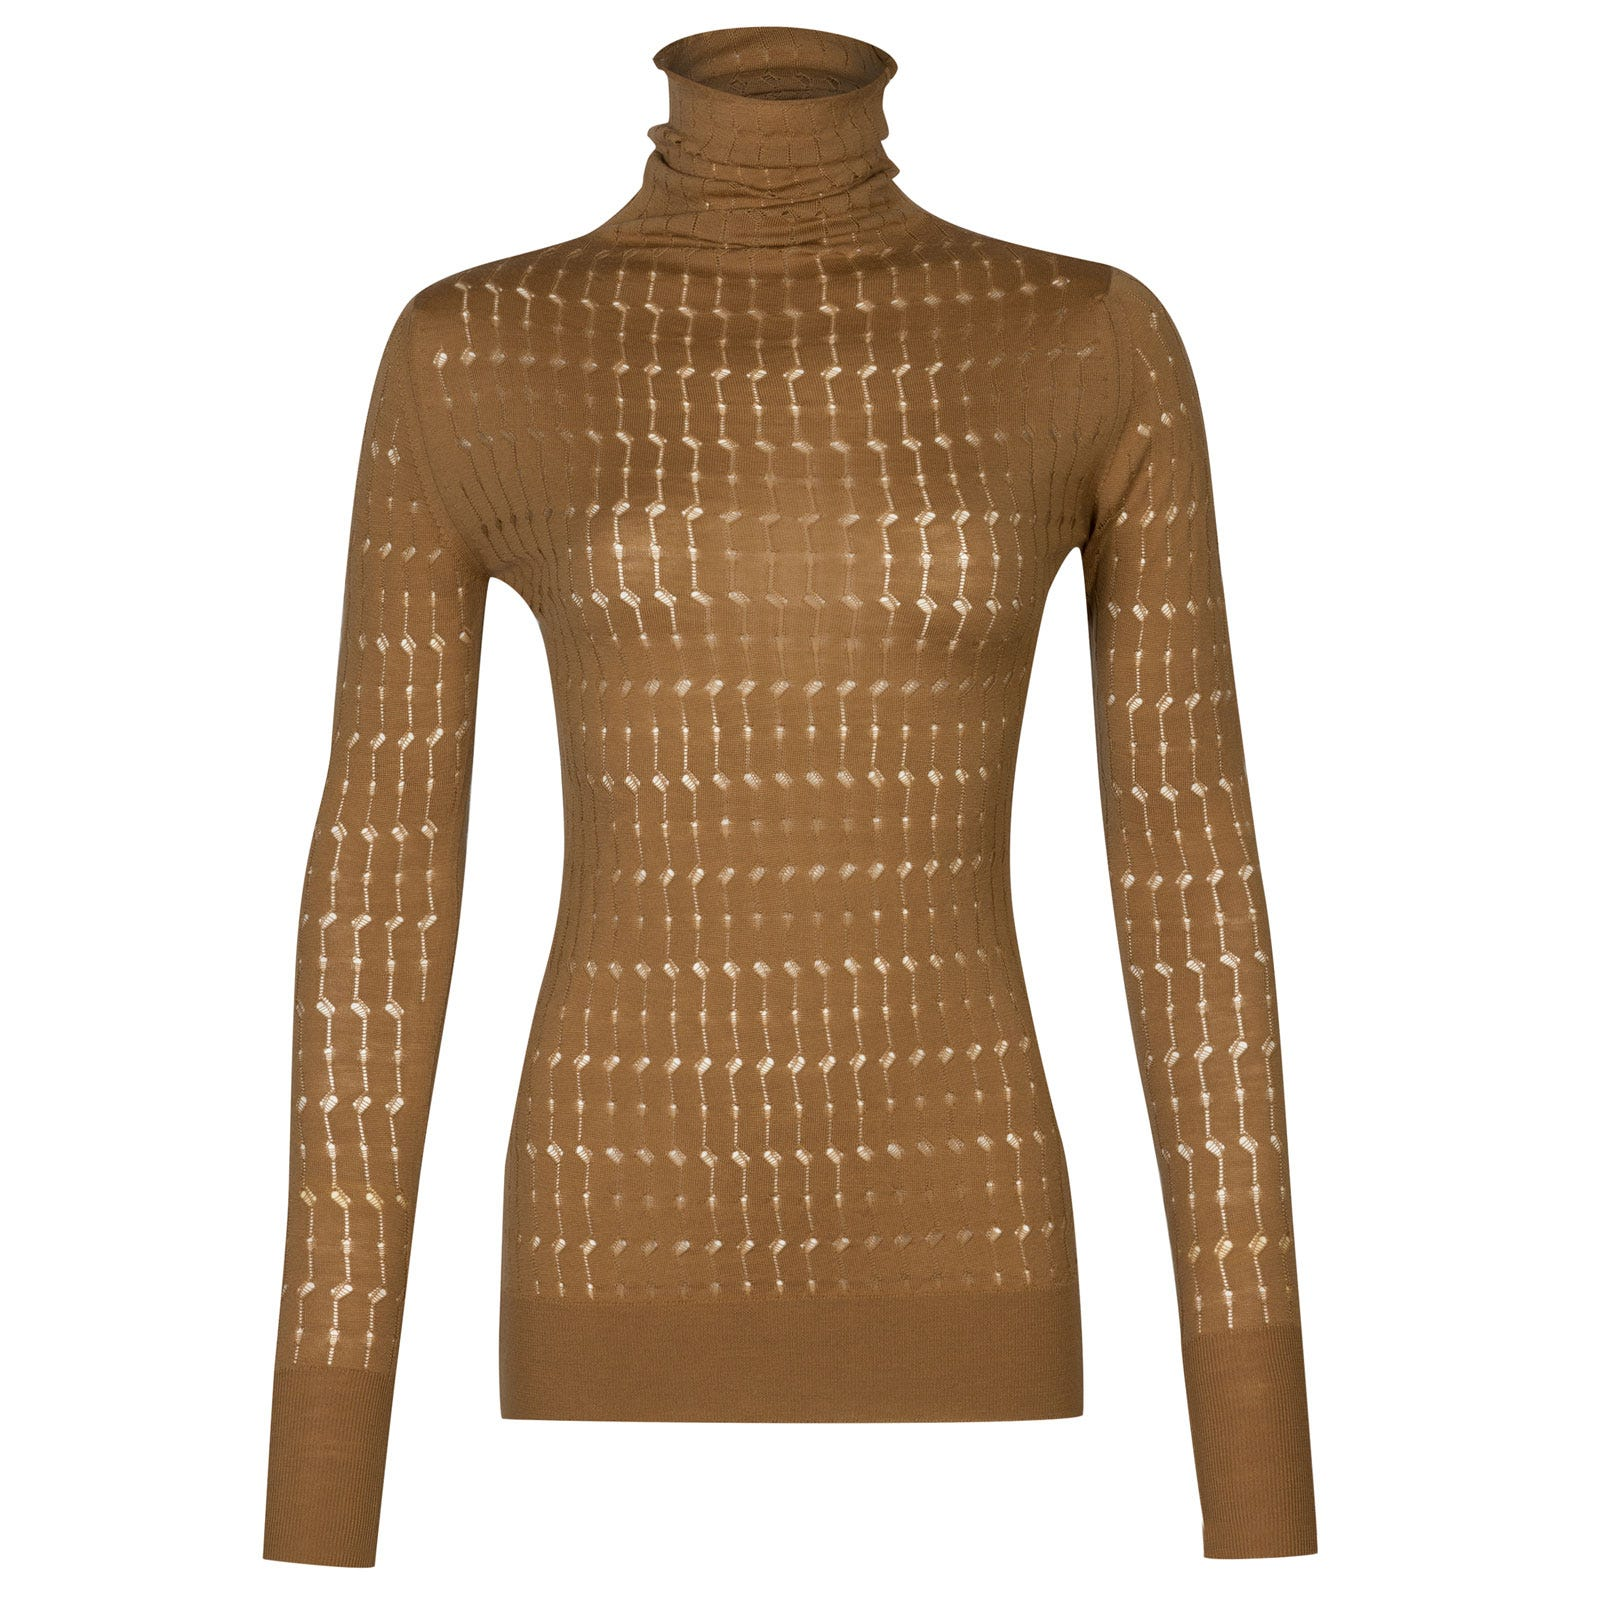 John Smedley spindel Merino Wool Sweater in Camel-S